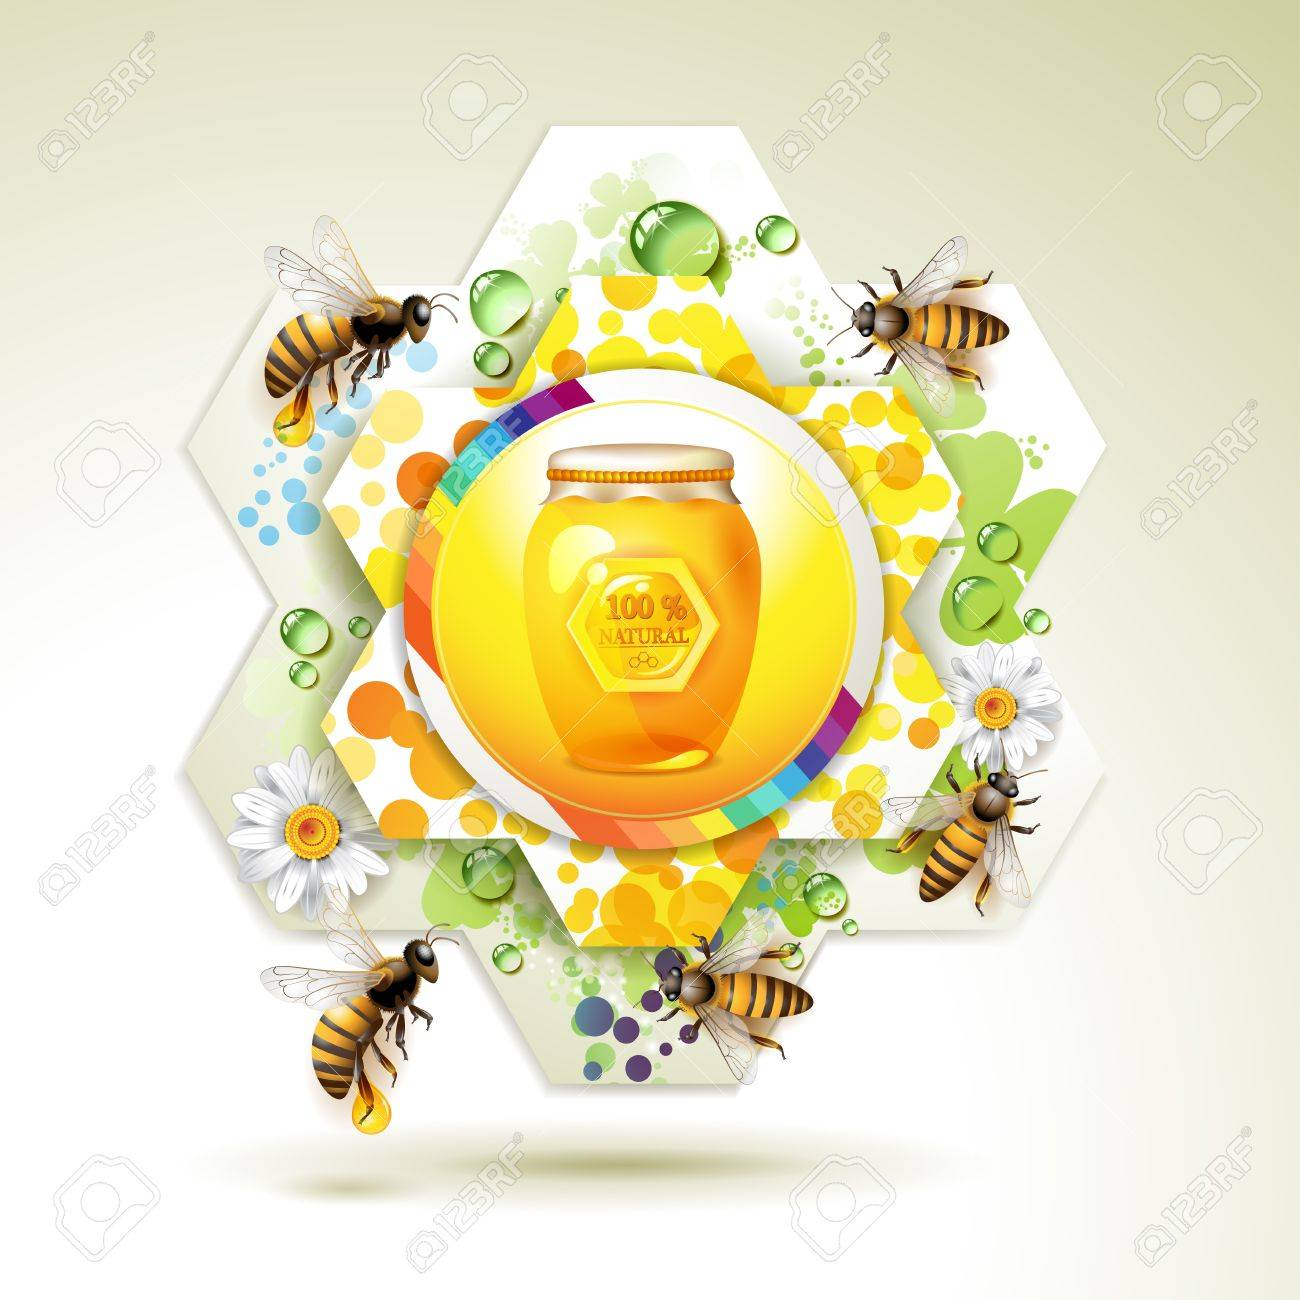 Glass jar with bee and honeycomb over floral background Stock Vector - 11660723